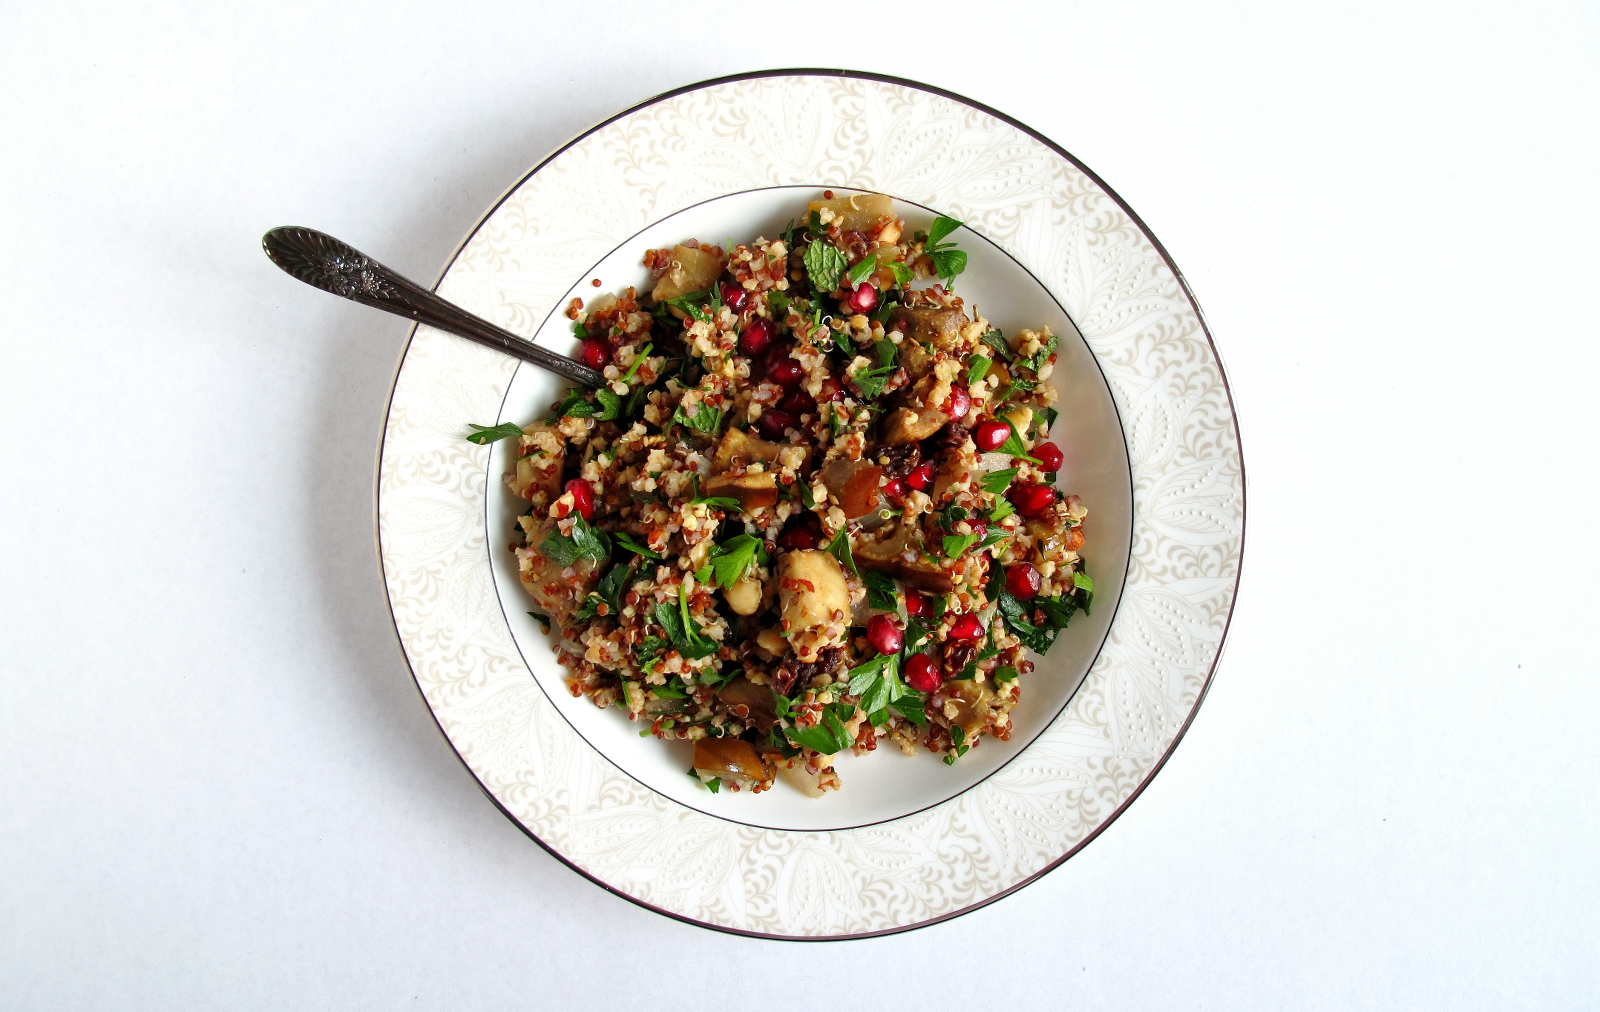 Pomegranate and Hazelnut Moroccan Grain Salad [Vegan, Gluten-Free]